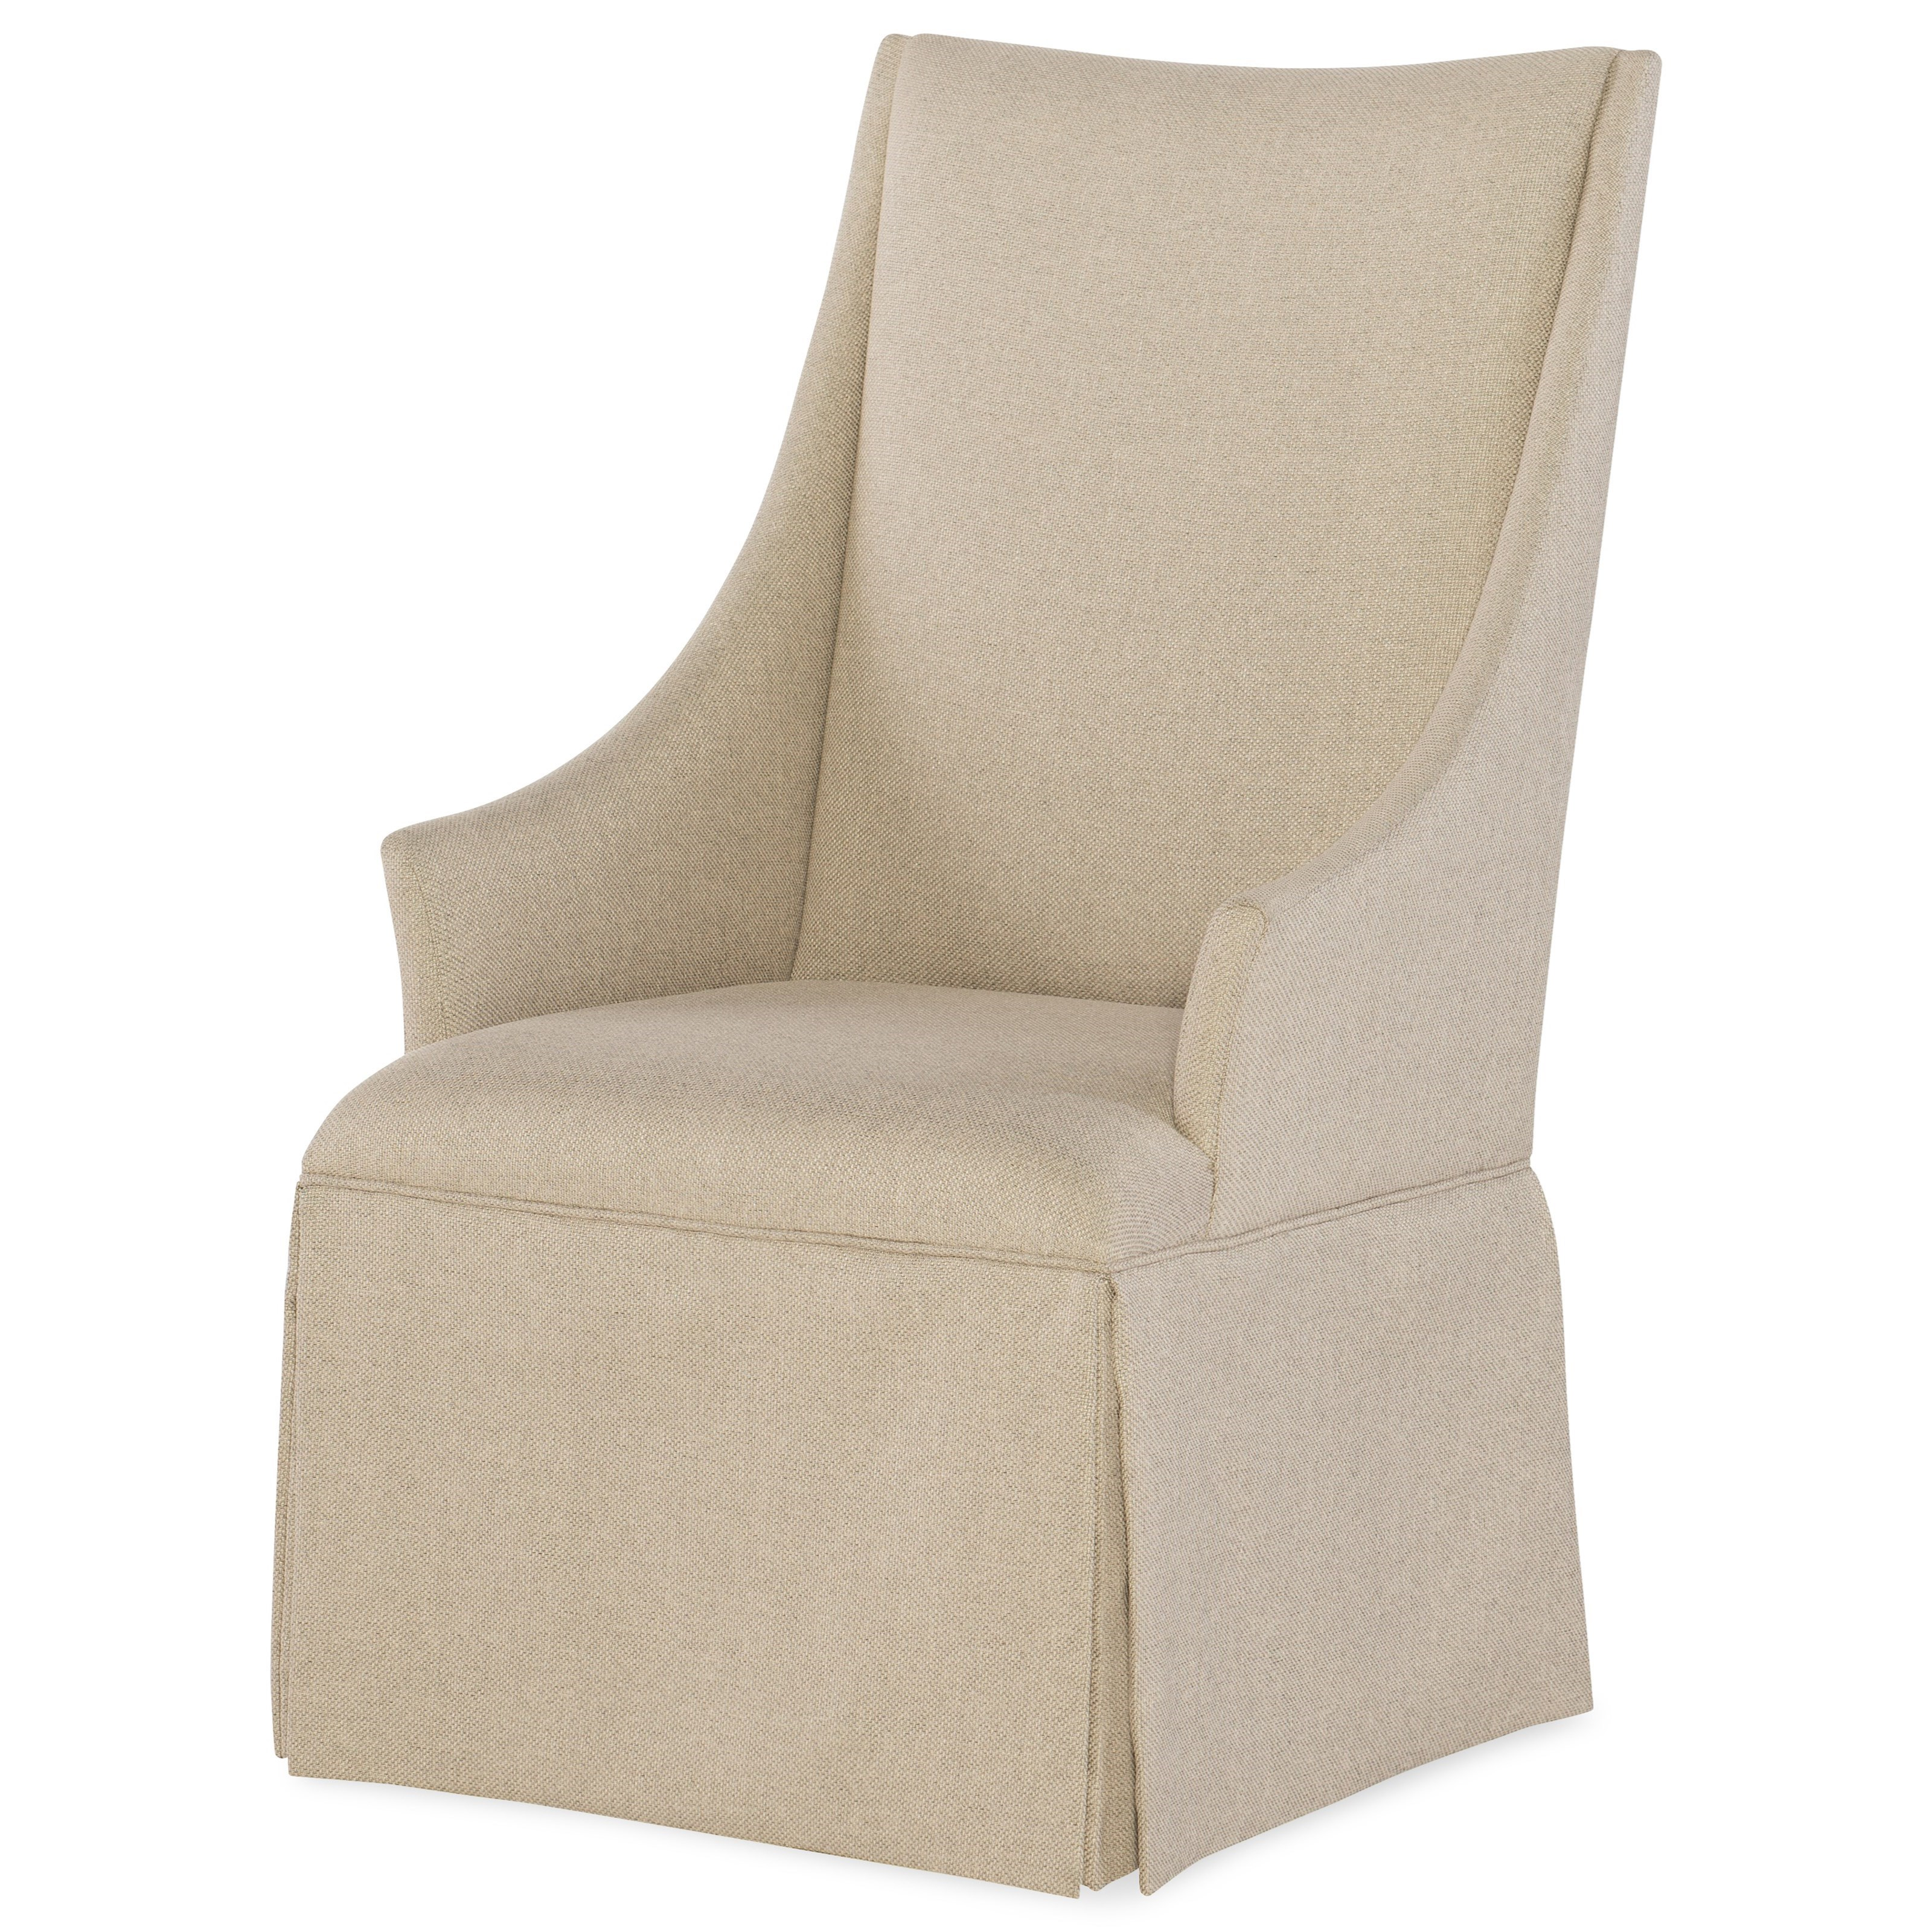 Rachael Ray Home by Legacy Classic Soho Upholstered Arm Chair - Item Number: 6020-451 KD